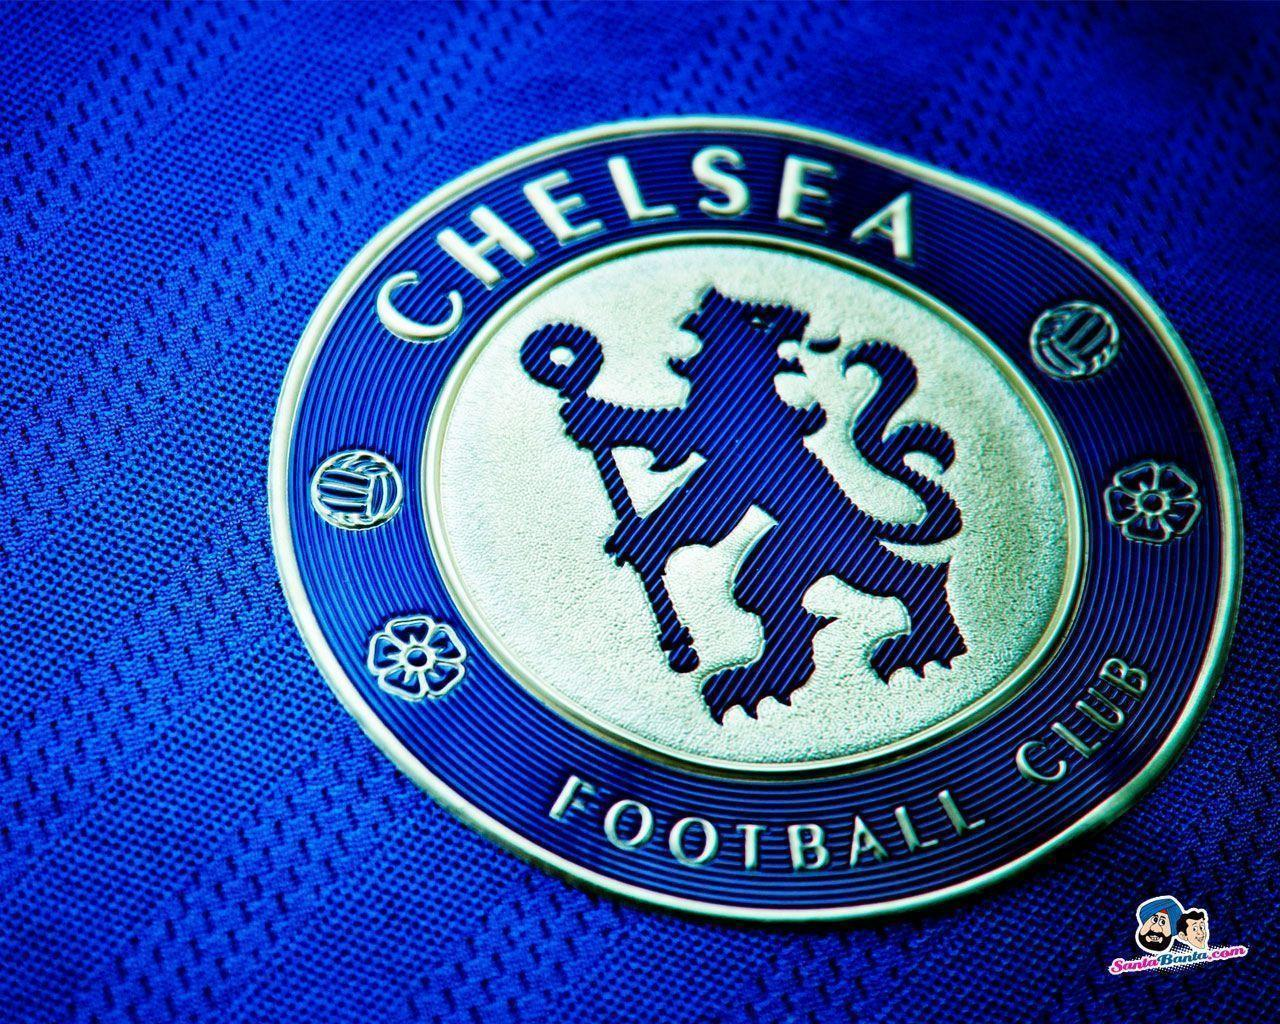 Chelsea Logo Wallpapers / Wallpapers Sport 22272 high quality